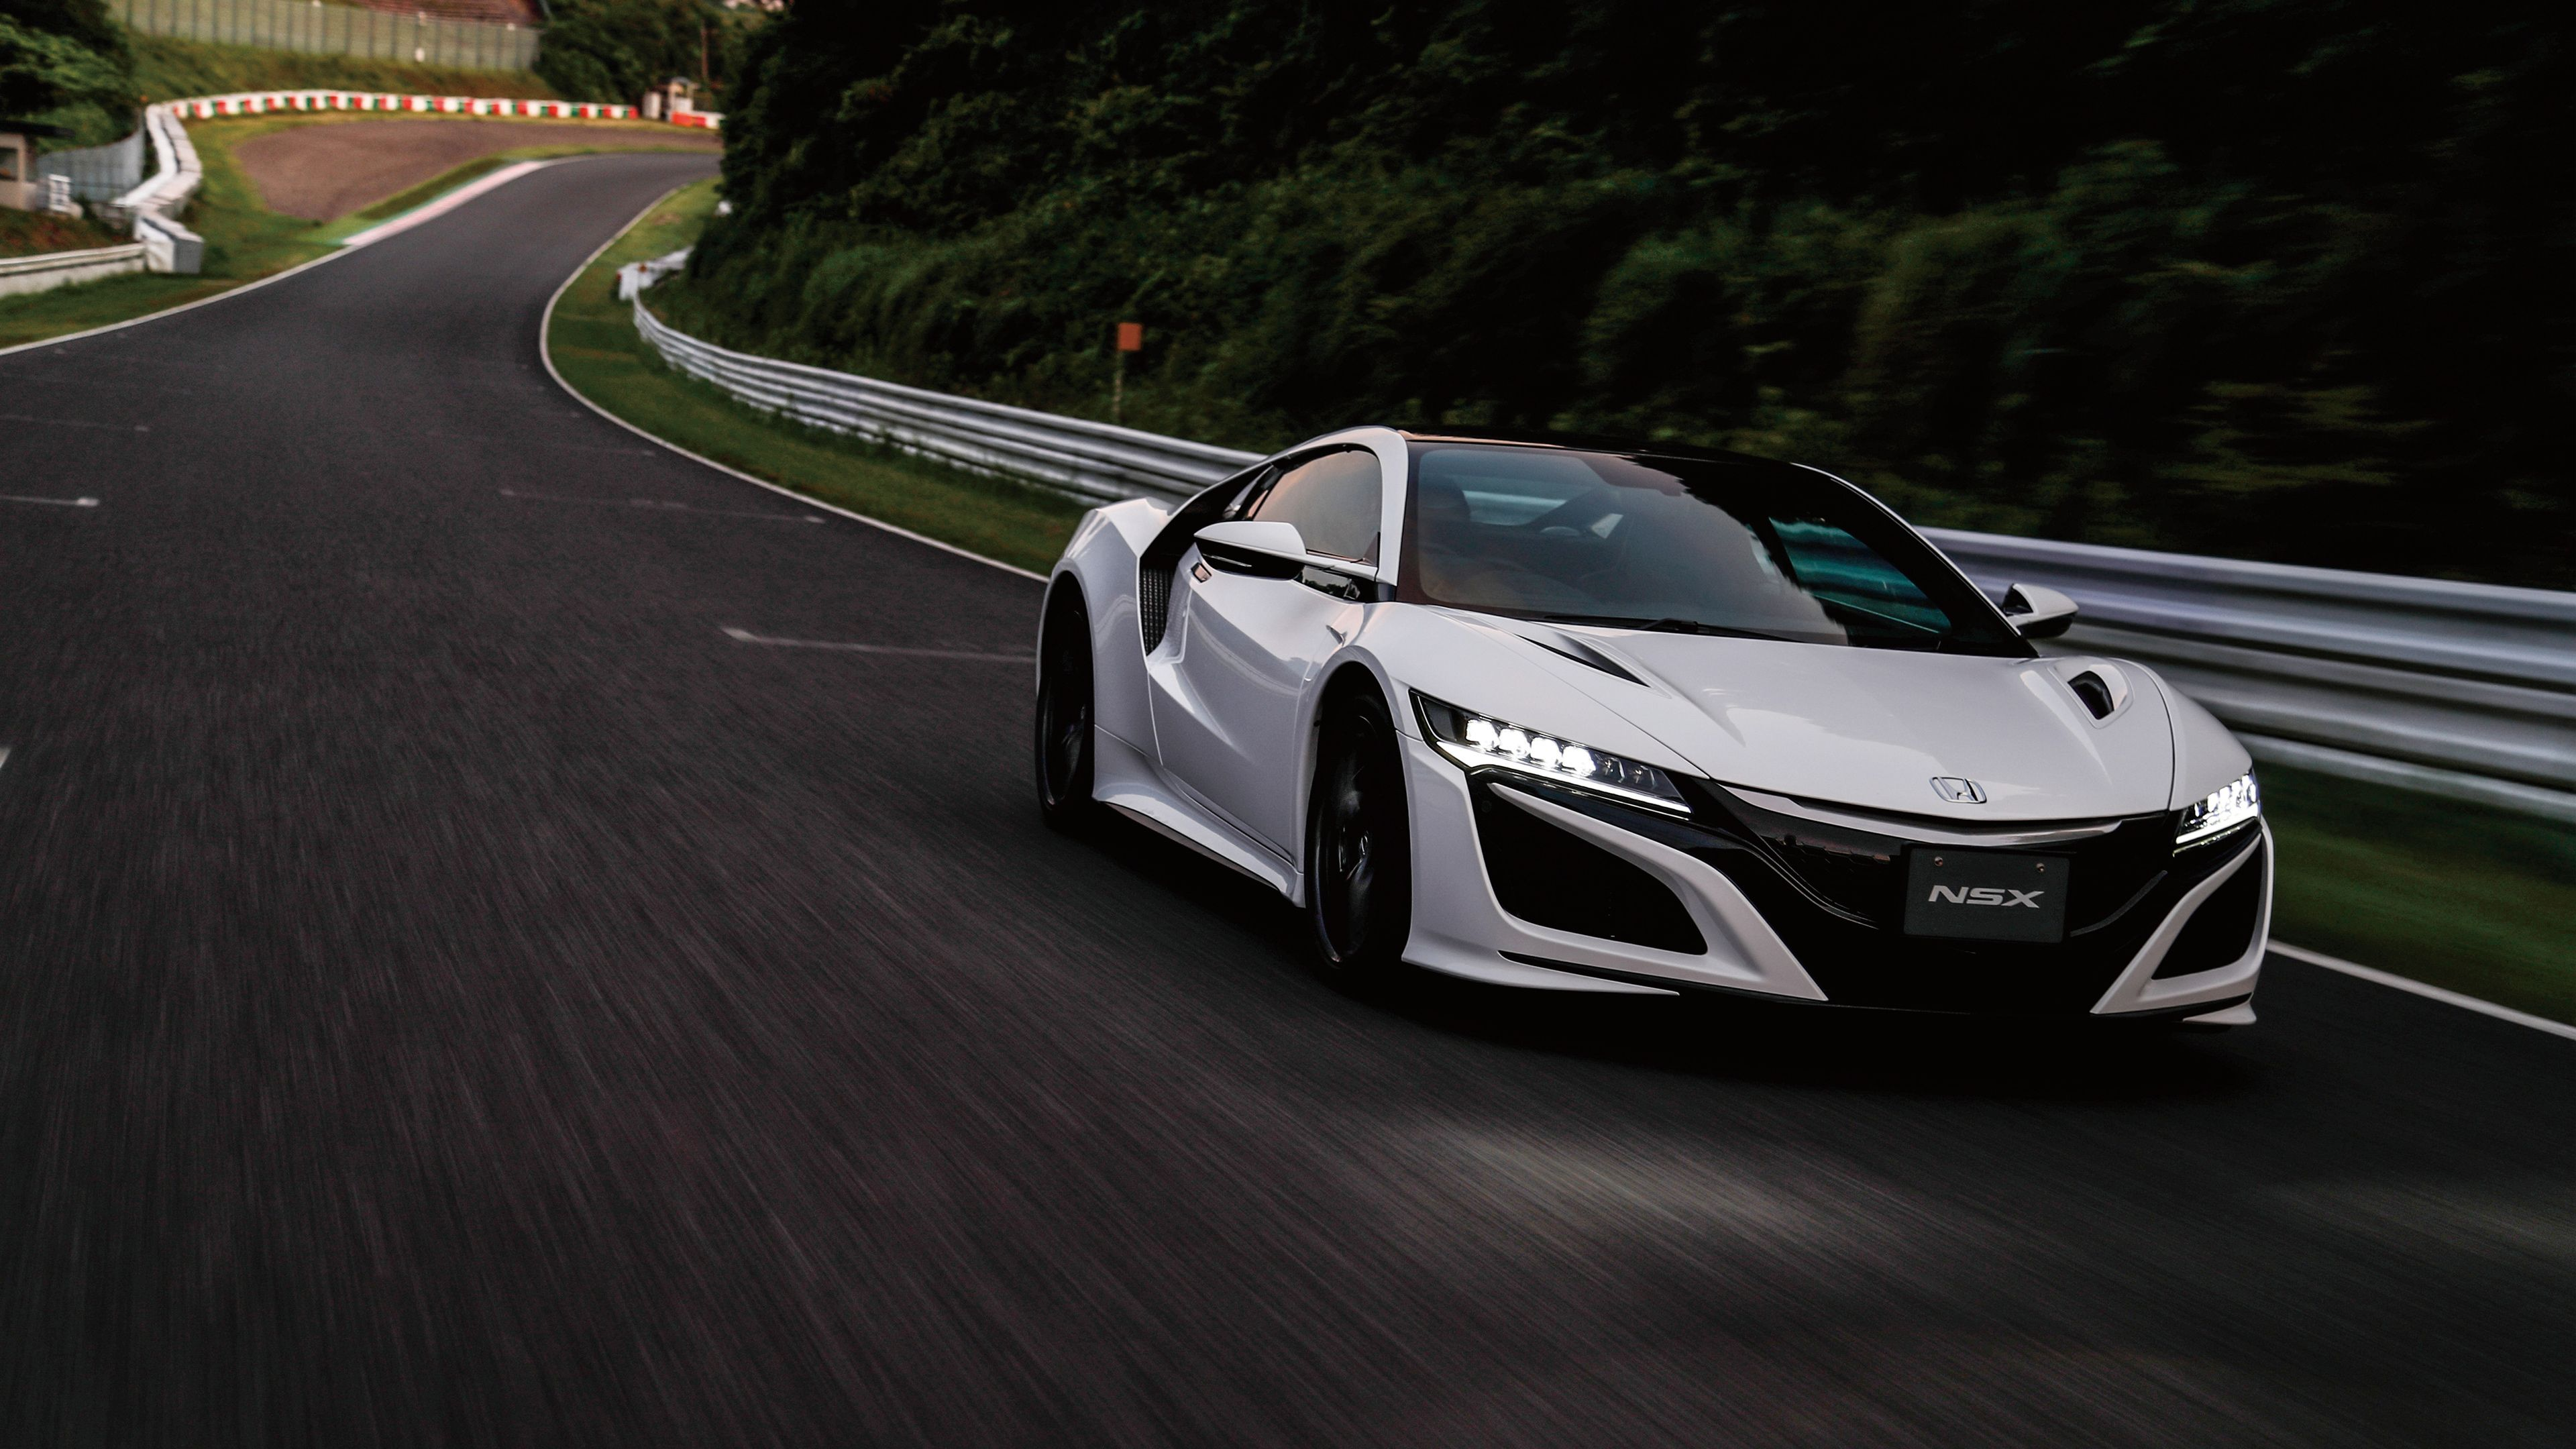 Honda acura nsx hd desktop wallpaper widescreen fullscreen honda acura nsx hd desktop wallpaper widescreen fullscreen voltagebd Gallery